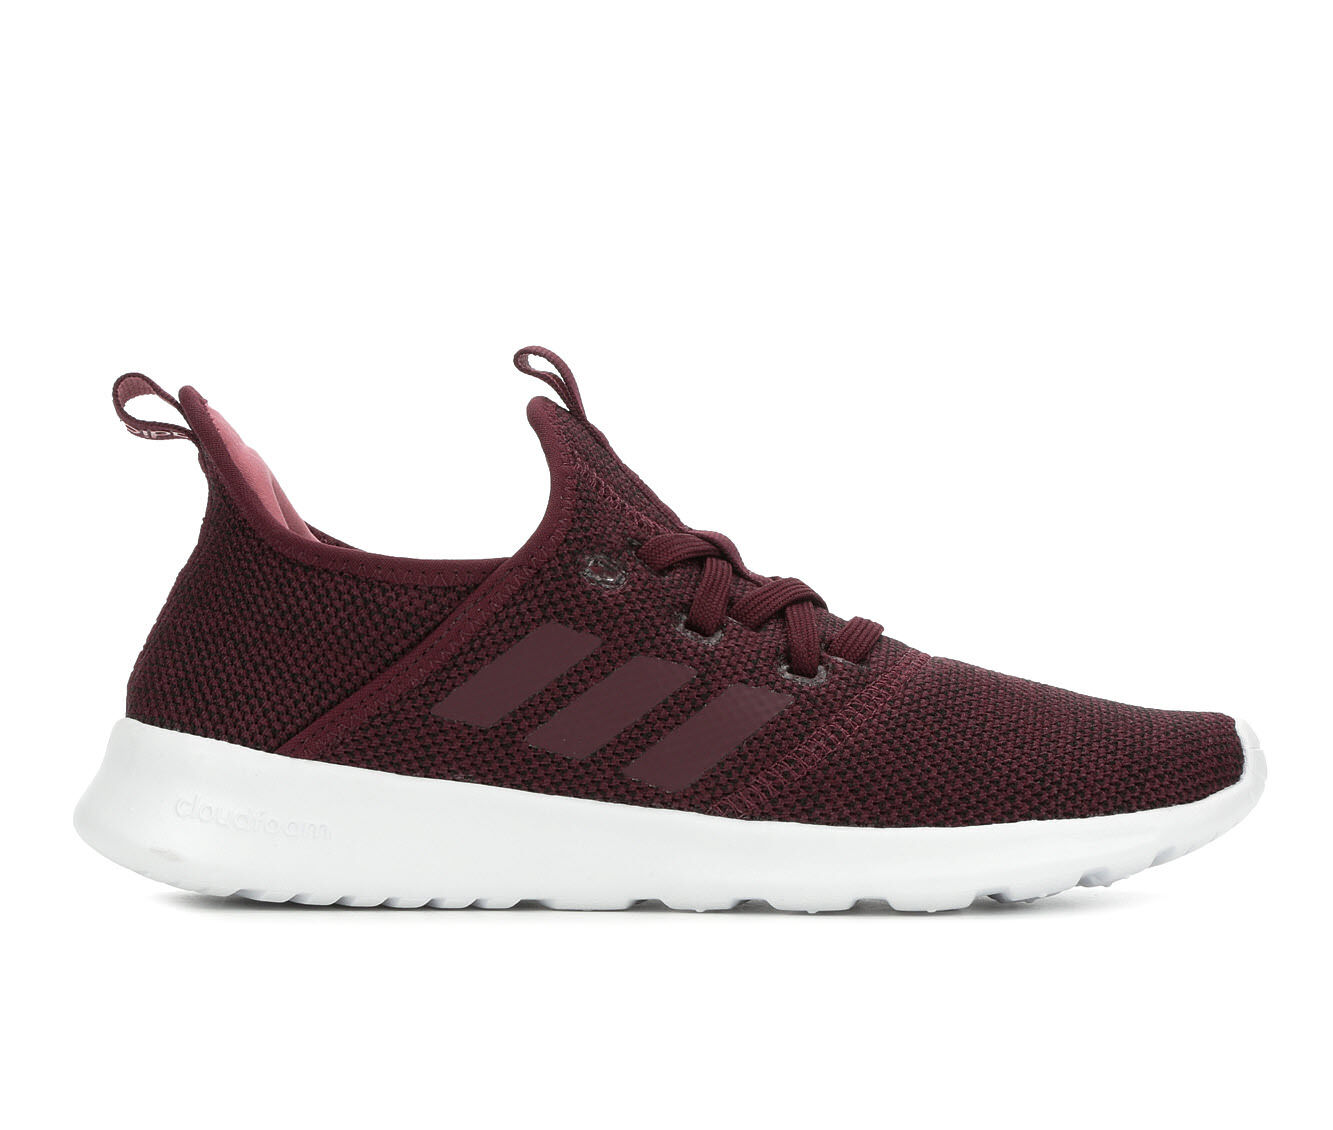 Women's Adidas Pure Sneakers Maroon/White